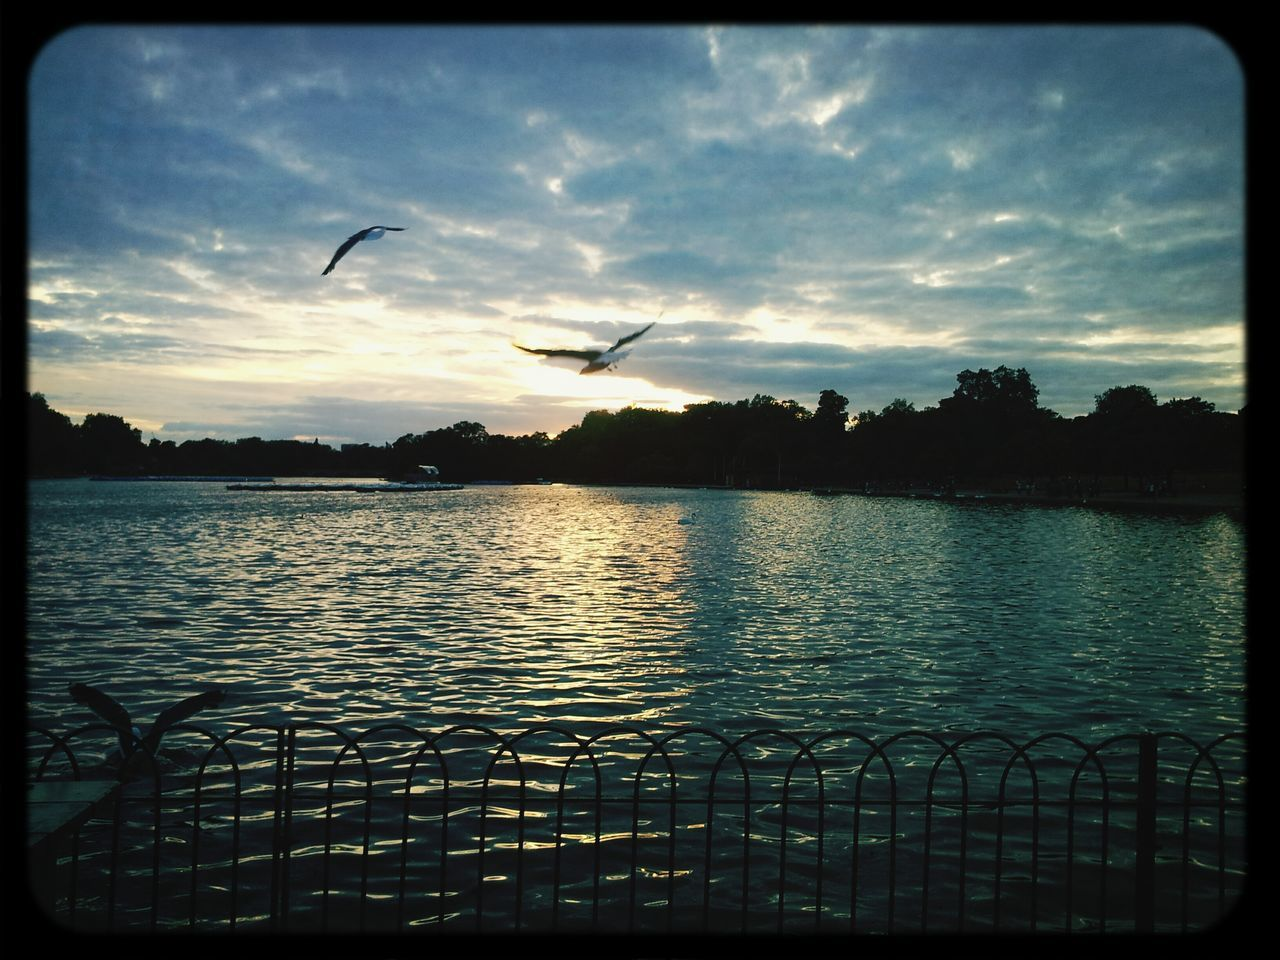 flying, sunset, silhouette, water, lake, sky, outdoors, mid-air, nature, bird, scenics, no people, beauty in nature, tranquility, tree, spread wings, animal themes, day